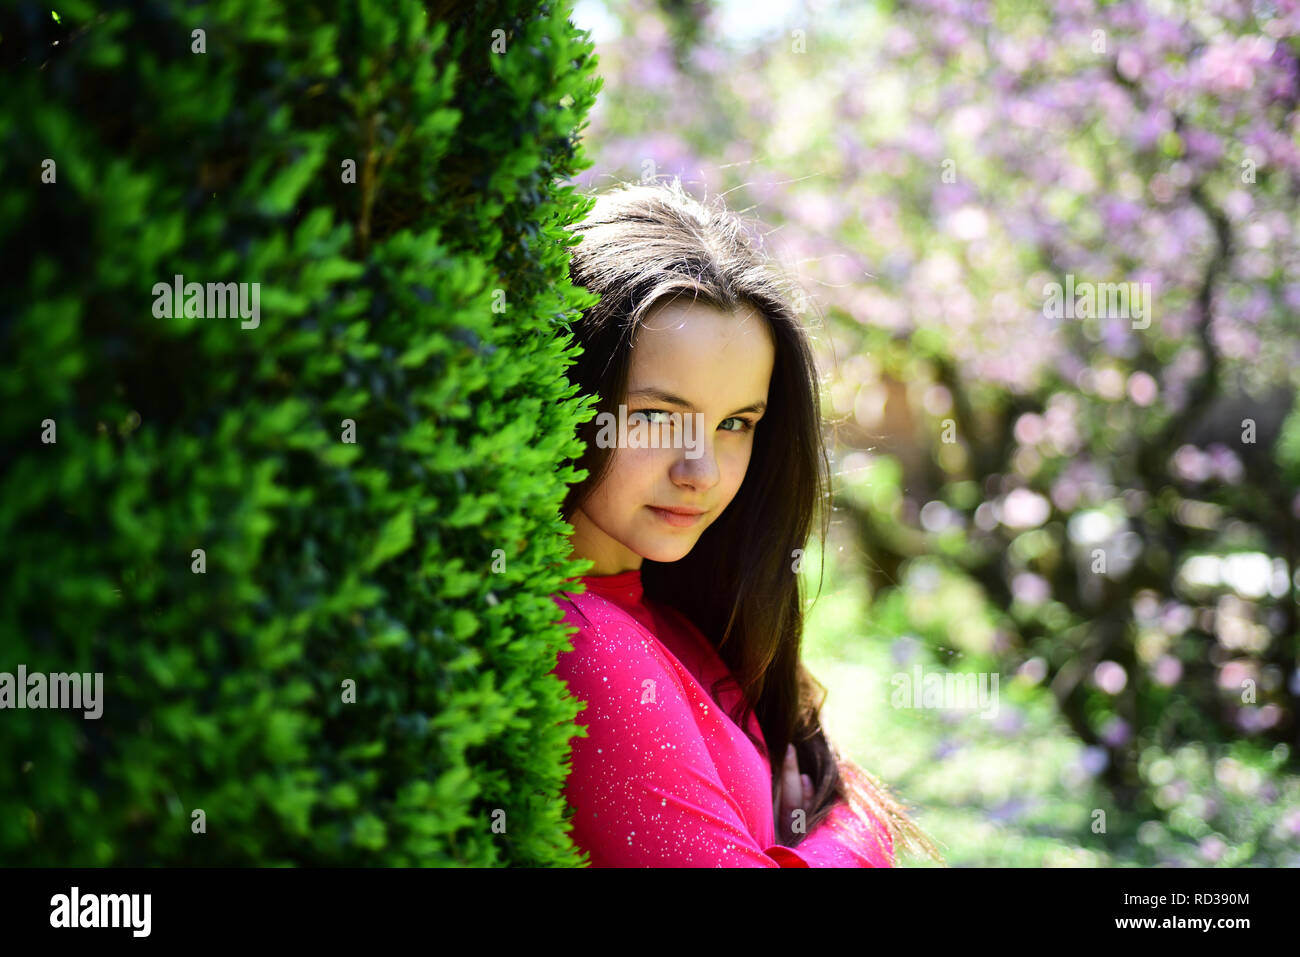 Beautiful Freshness Young Lady In Spring Garden Cute Girl On Spring Nature Pretty Girl With Young